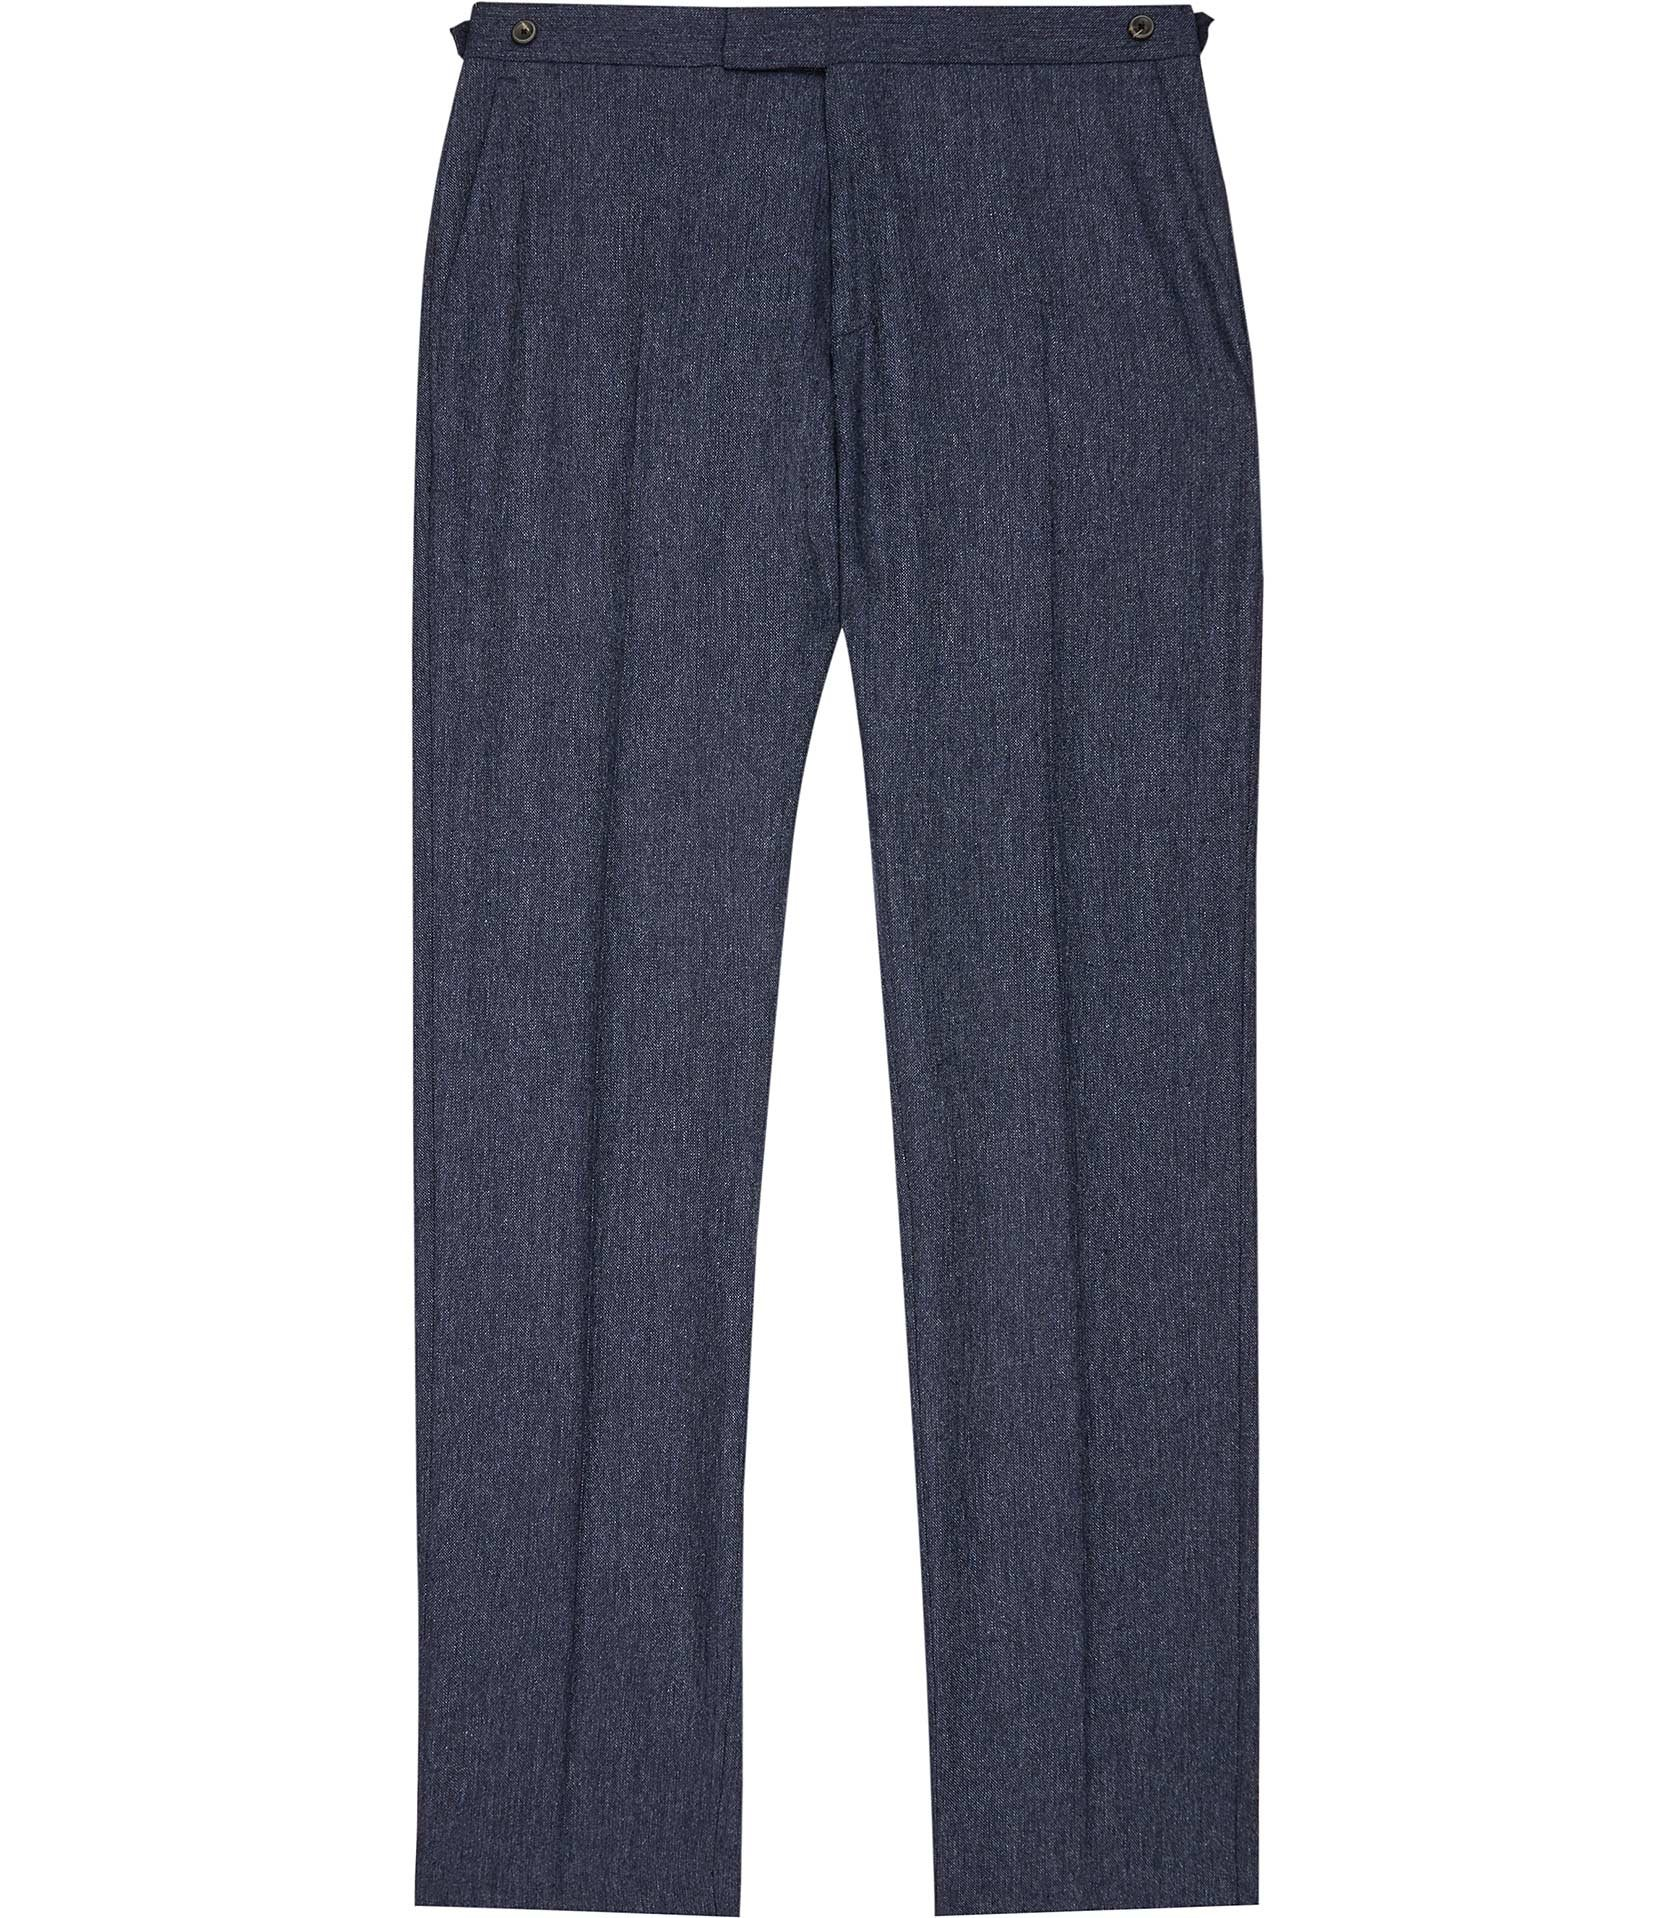 Reiss Airforce Blue Reynolds T Donegal Modern-Fit Trousers